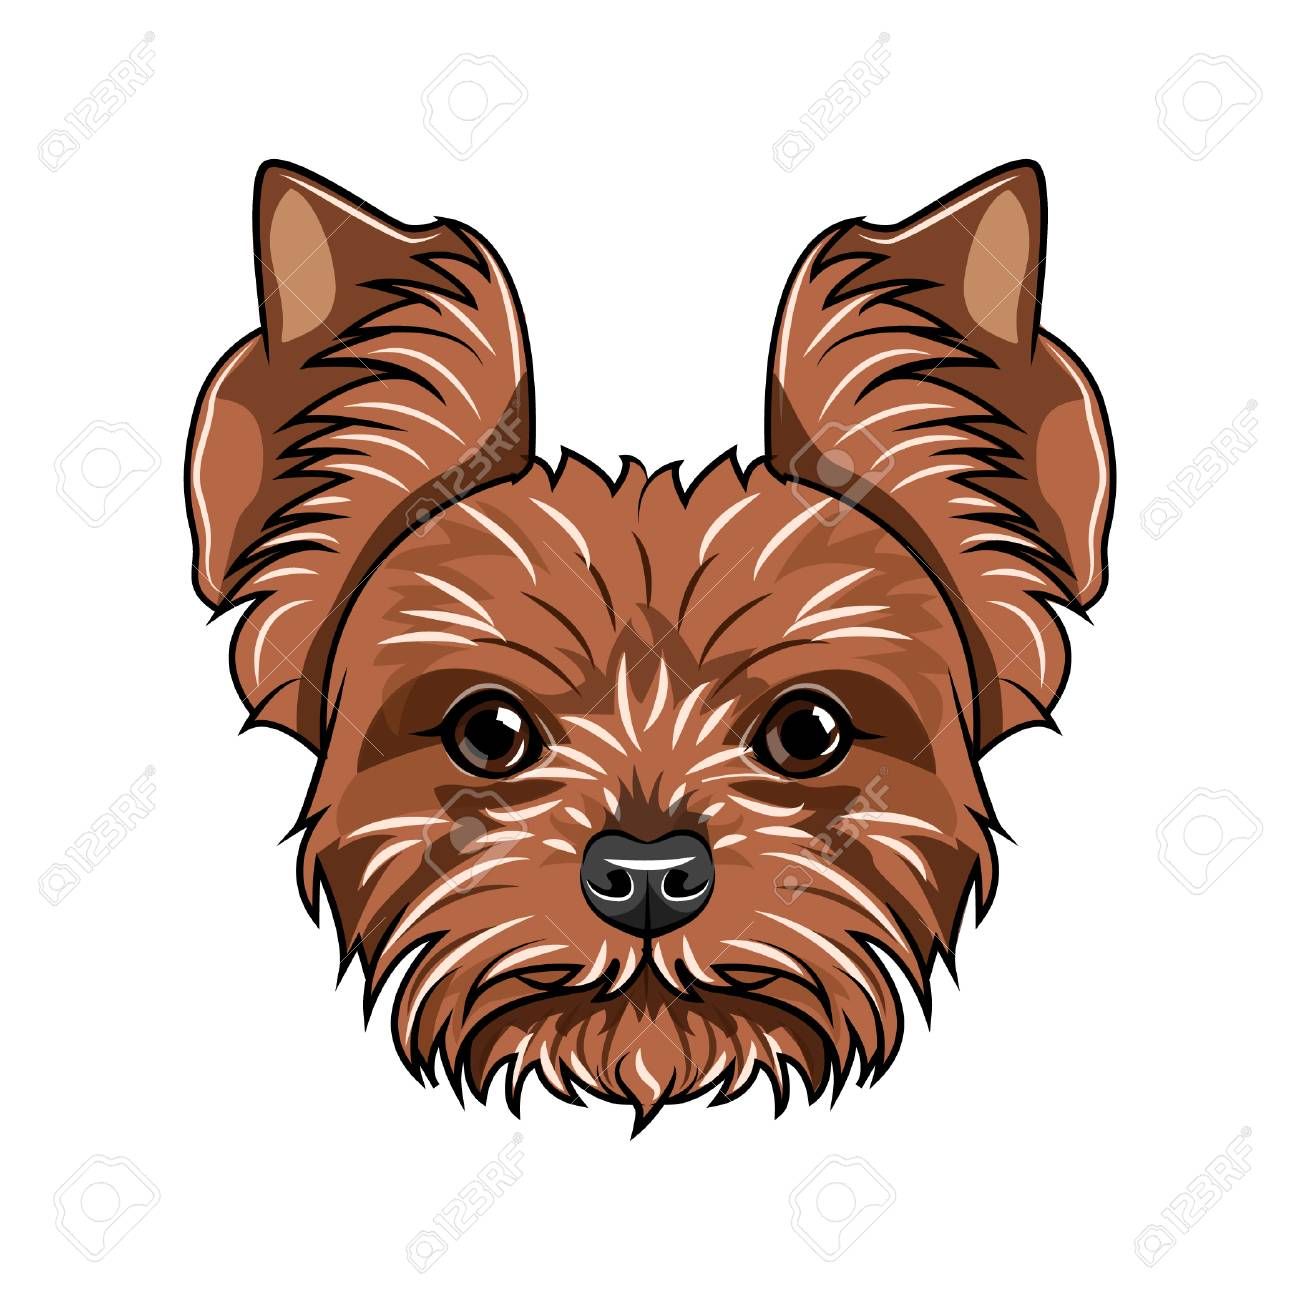 Yorkshire Terrier Head Vector Illustration Royalty Free Cliparts